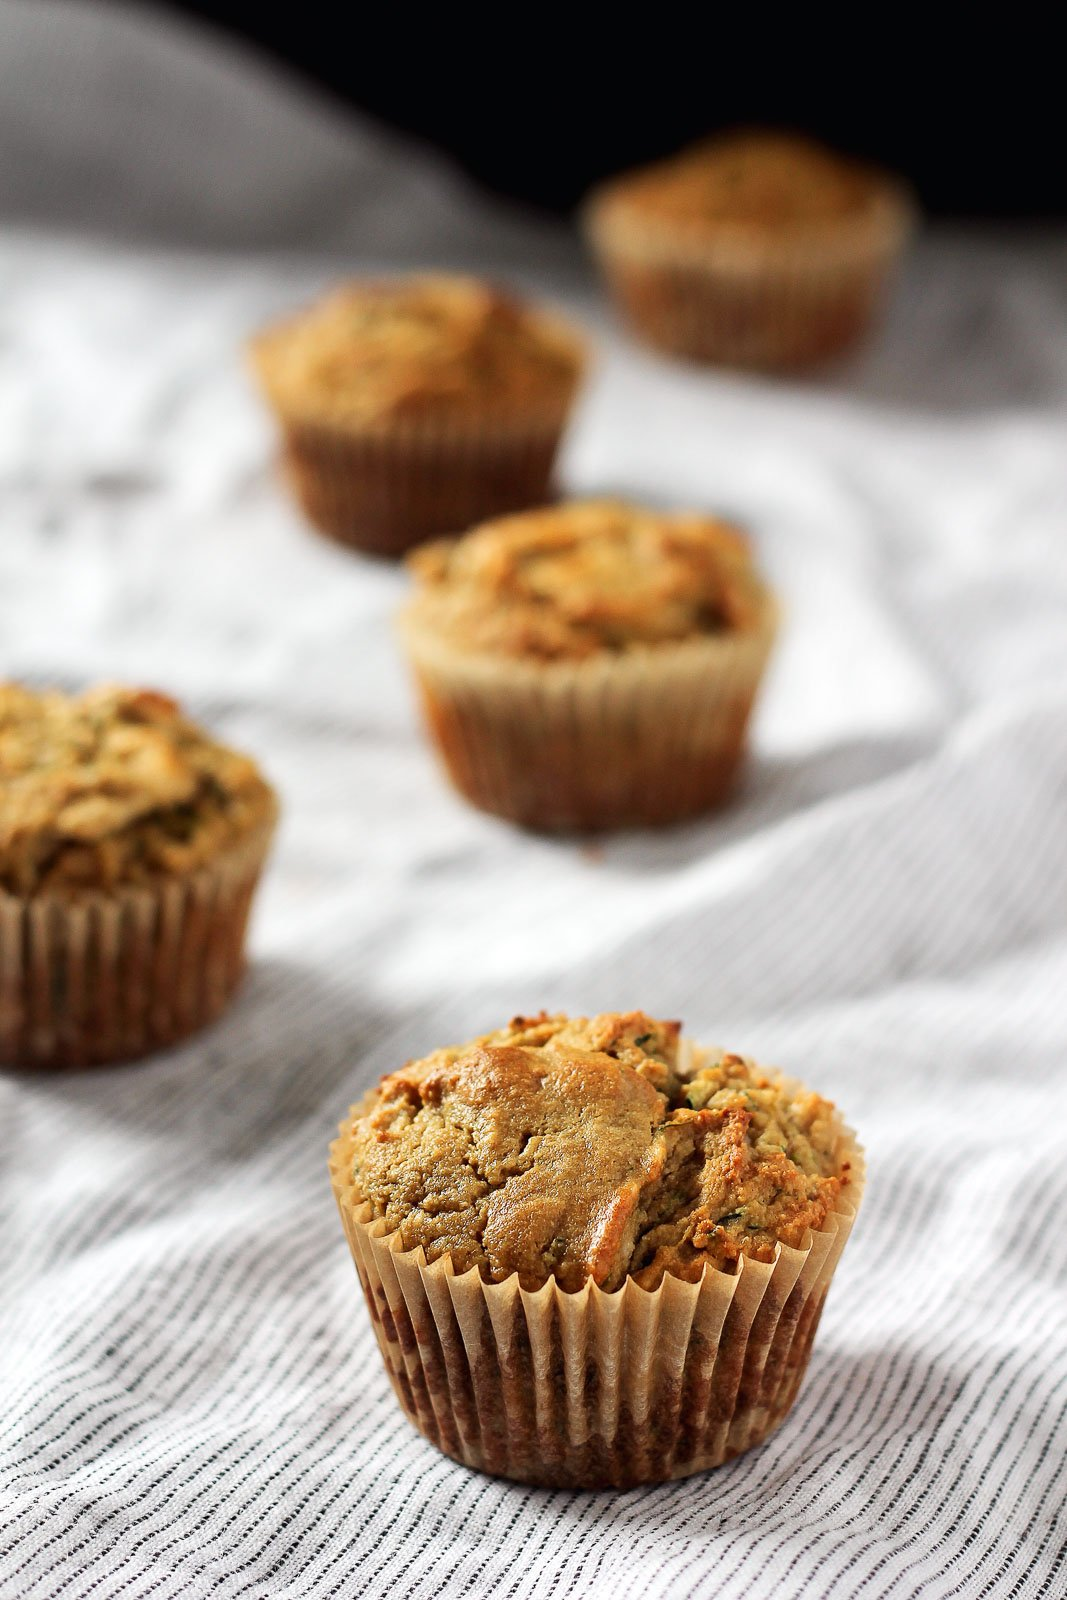 Scrumptious Paleo Banana Zucchini Muffins Made With Coconut Flour And Cashew Butter These Flavorful Muffins